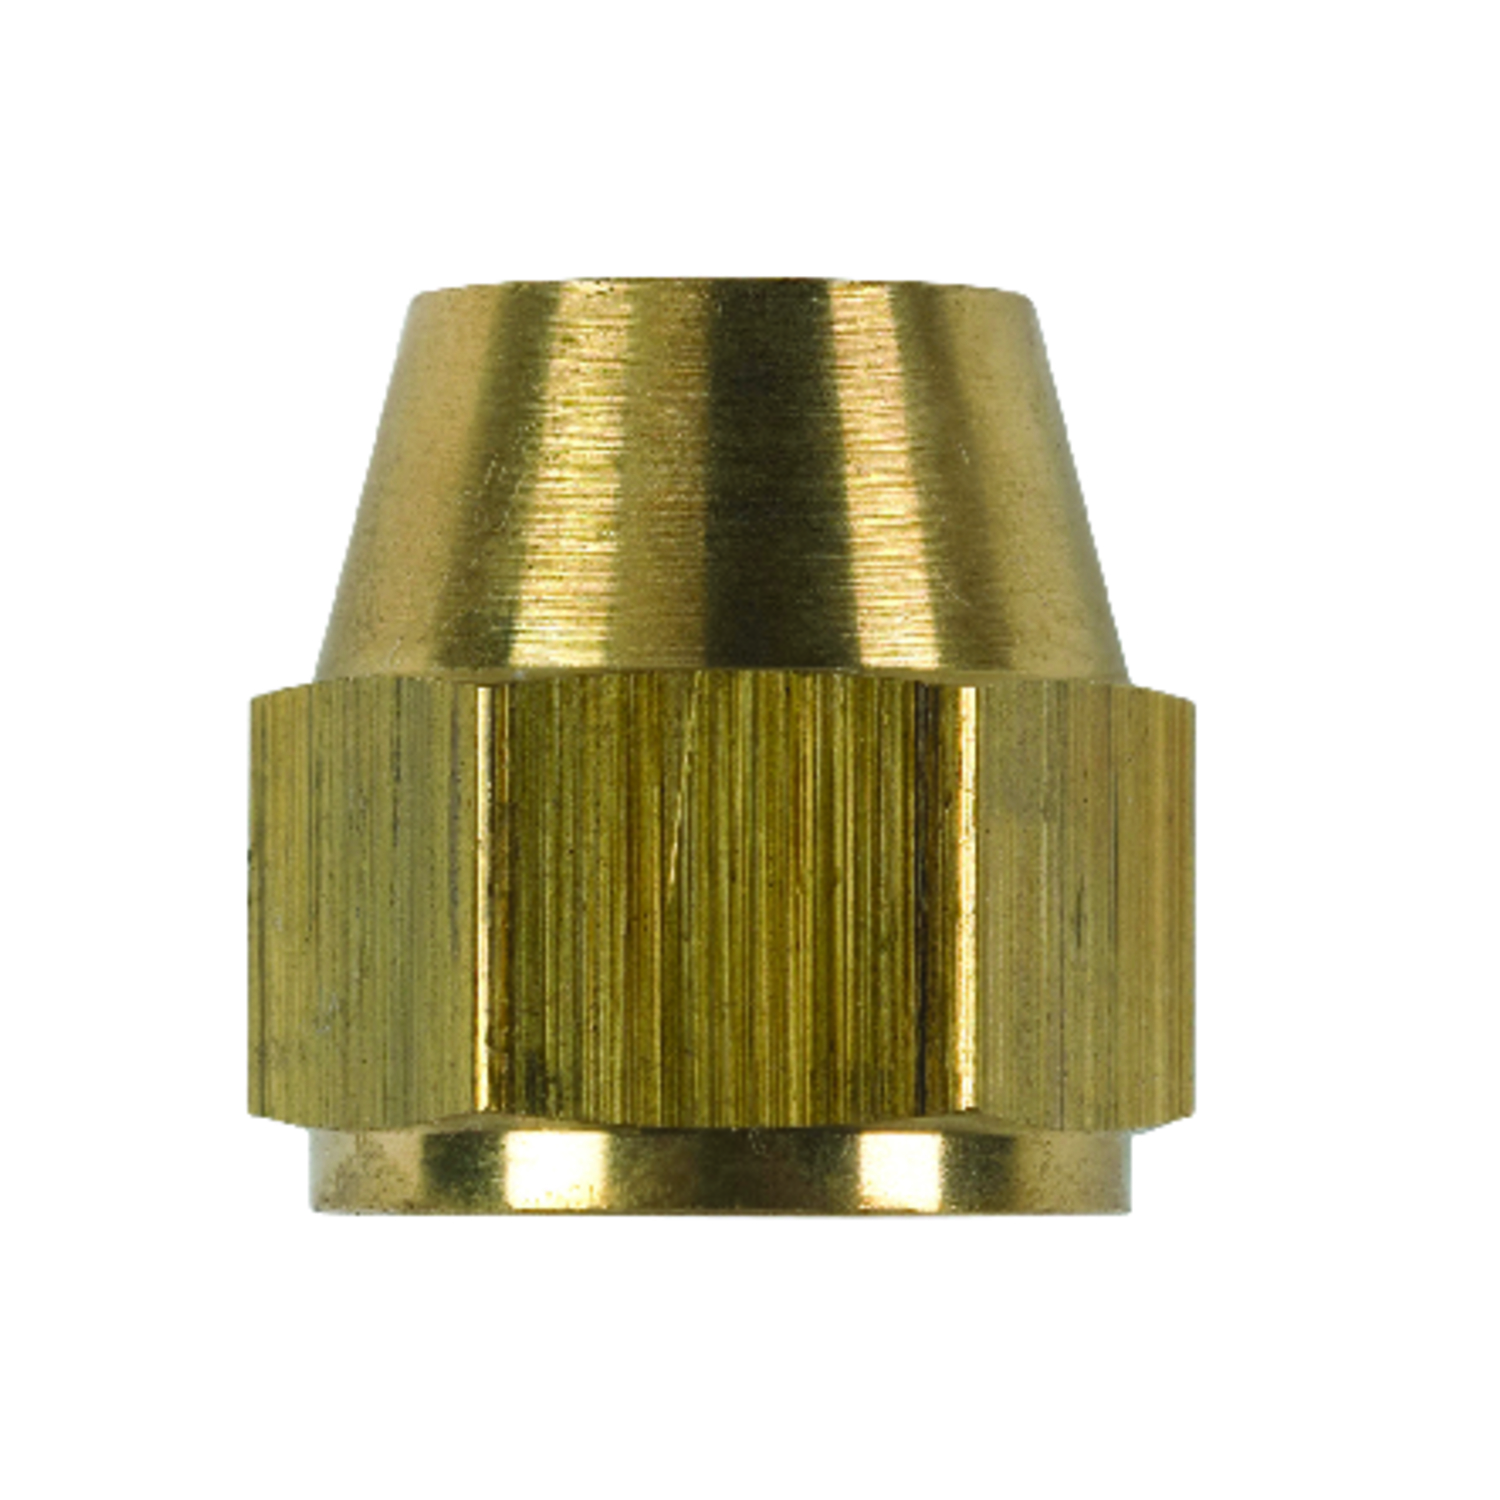 JMF  Brass  Bulk  3/8 in. Dia.